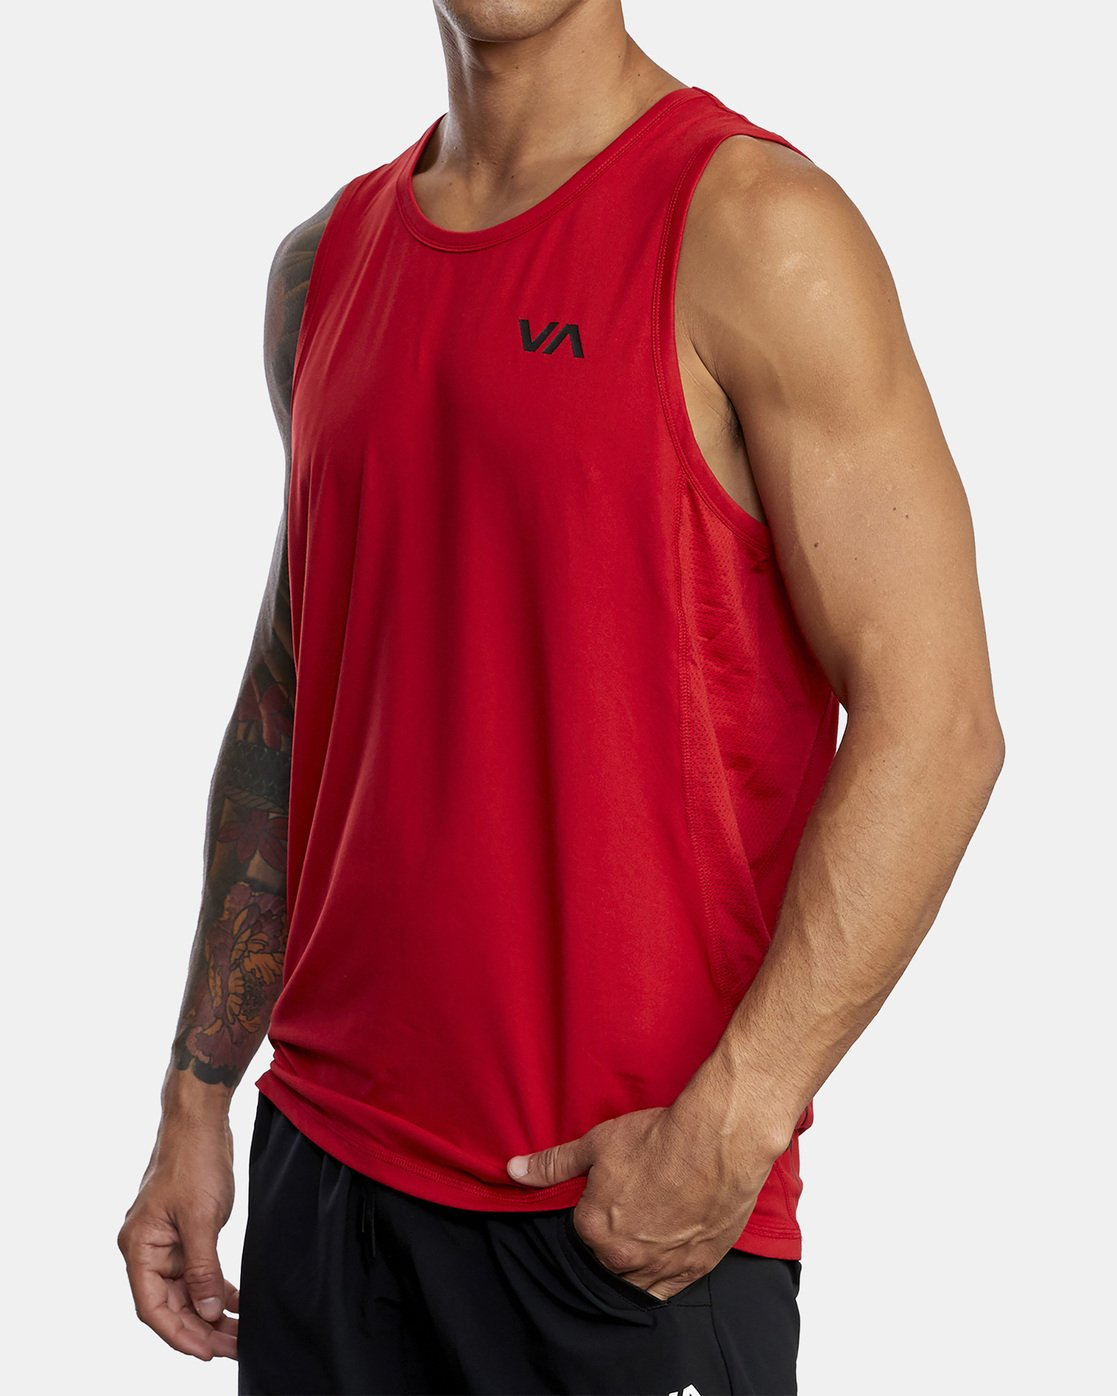 4 SPORT VENT TANK TOP Red V9031RST RVCA